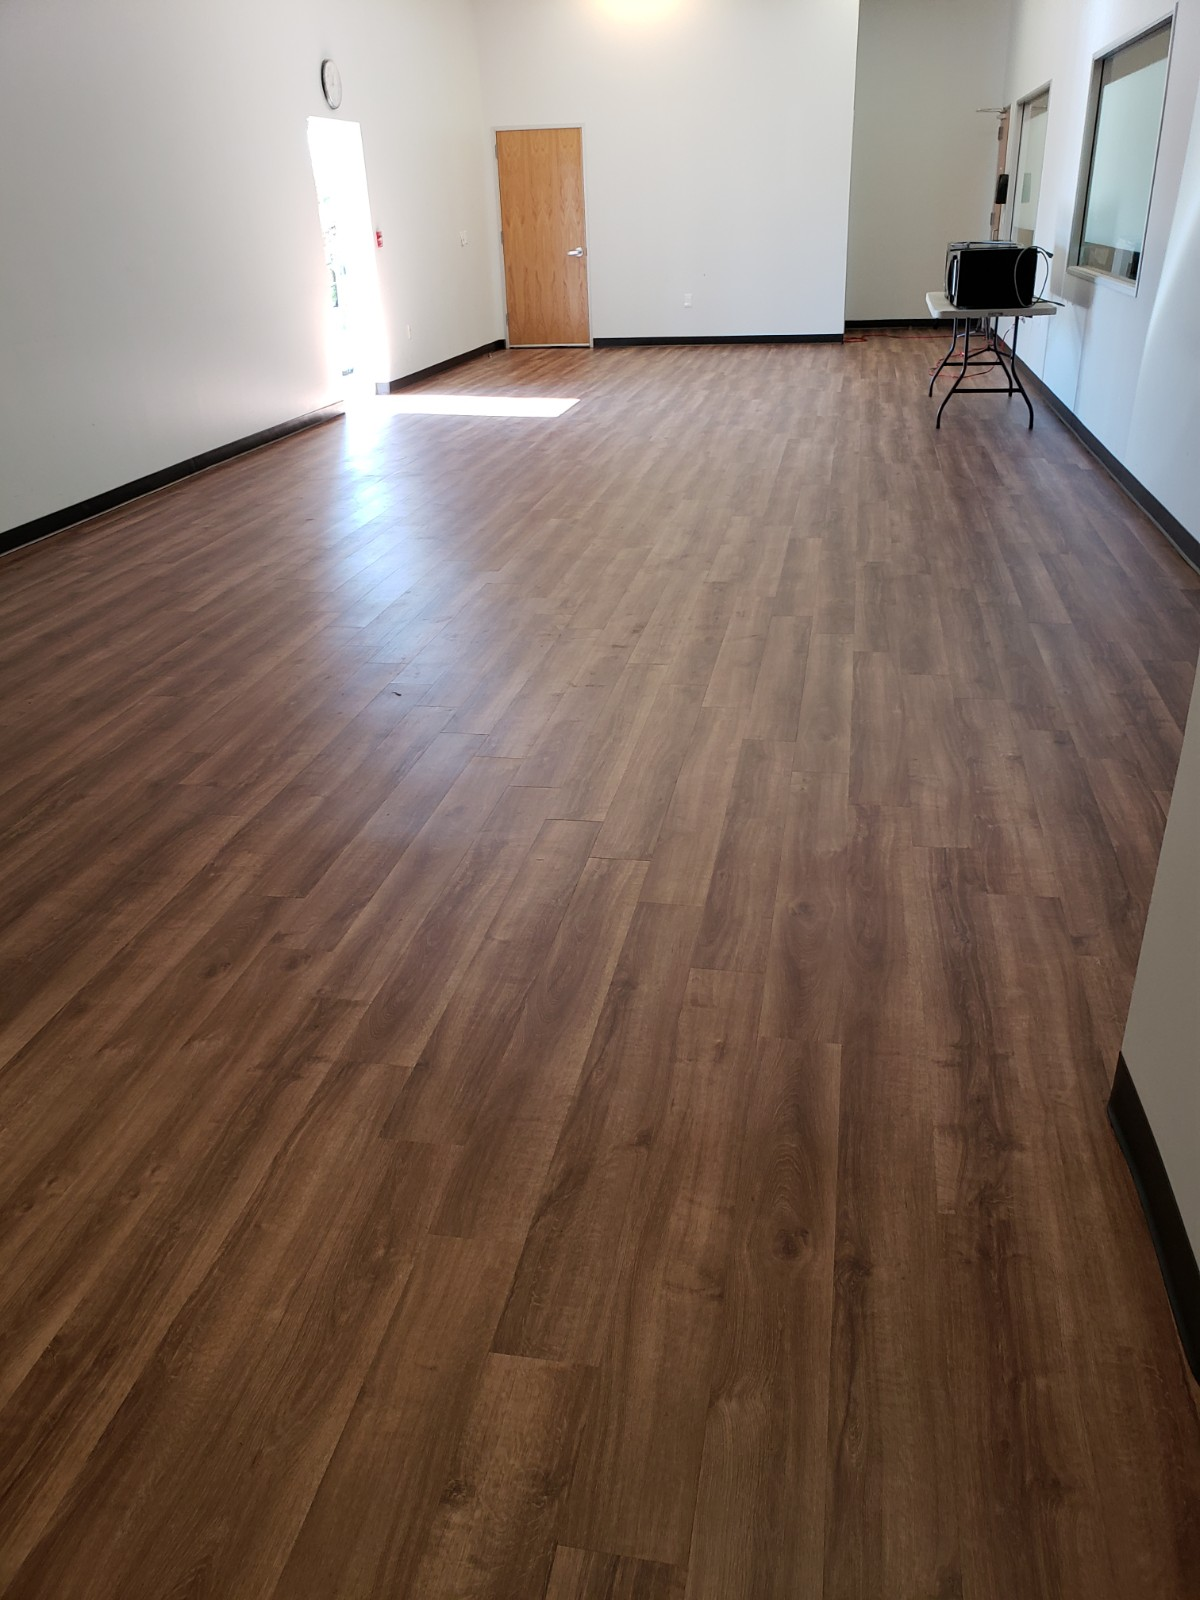 LVT flooring provides a wood-like finish, adding warmth and depth to the space, and thus allowing for a variety of design possibilities.